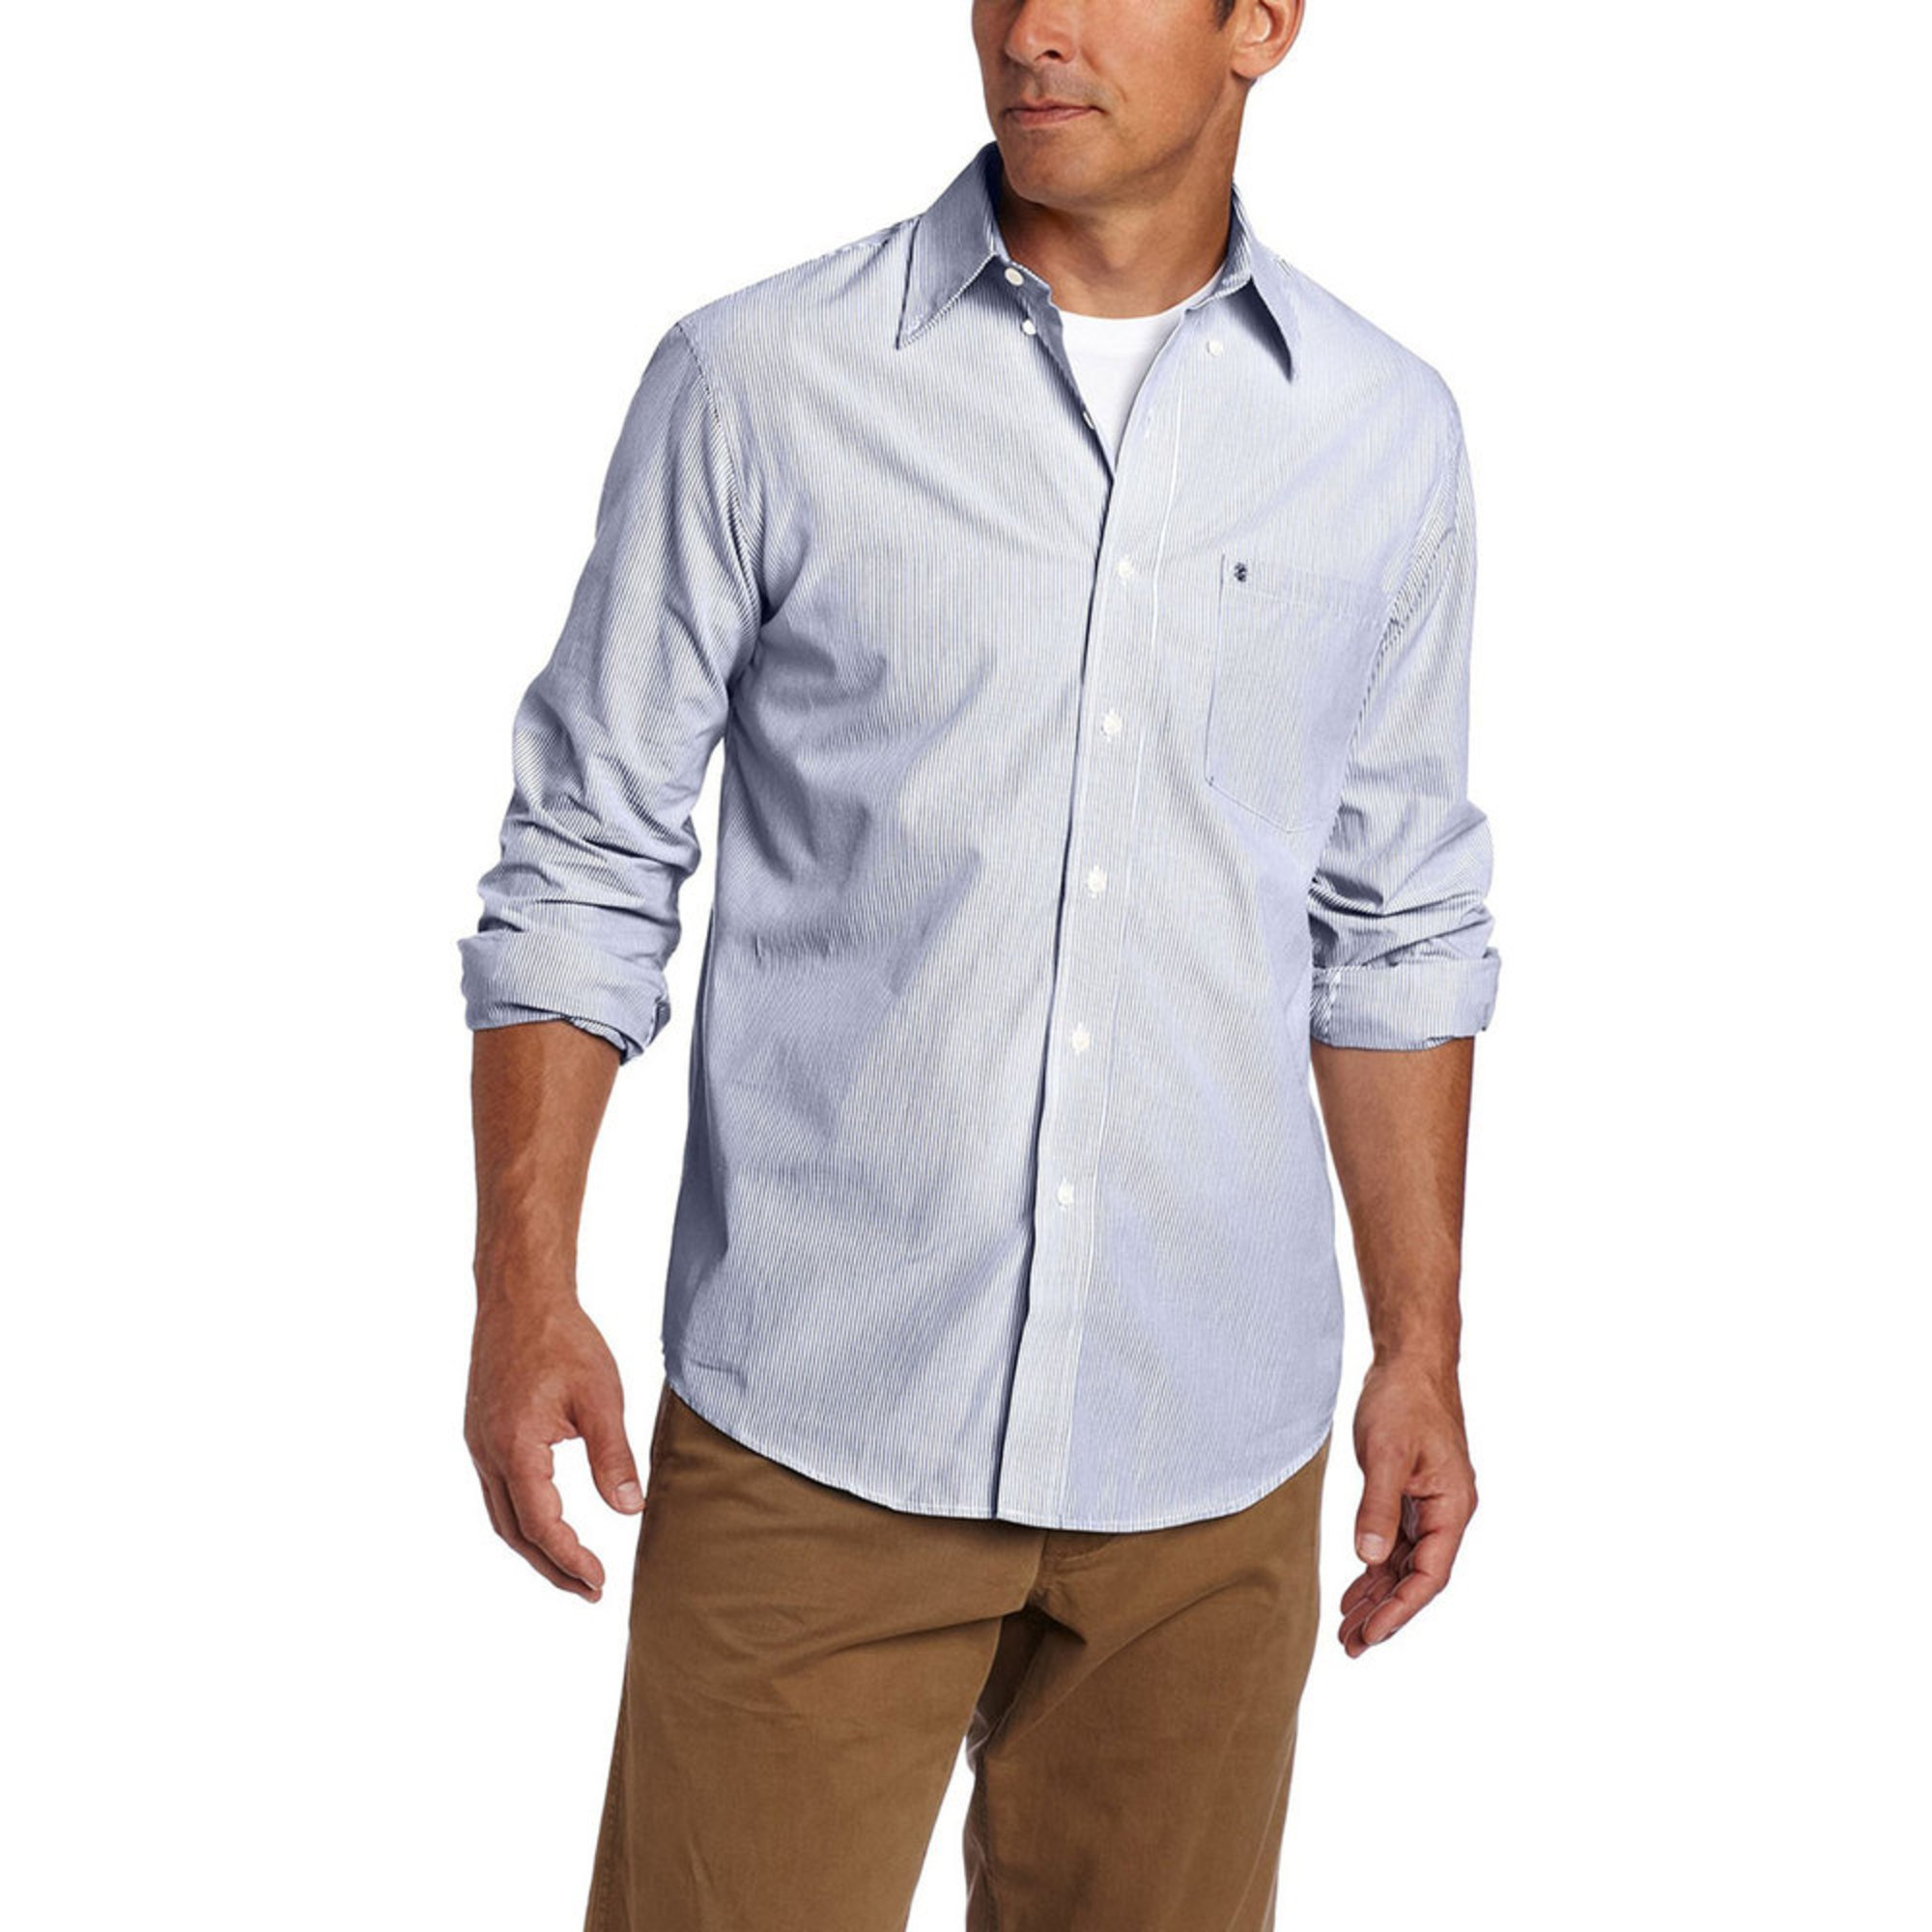 Izod men 39 s striped essential woven button down sport shirt for Izod button down shirts